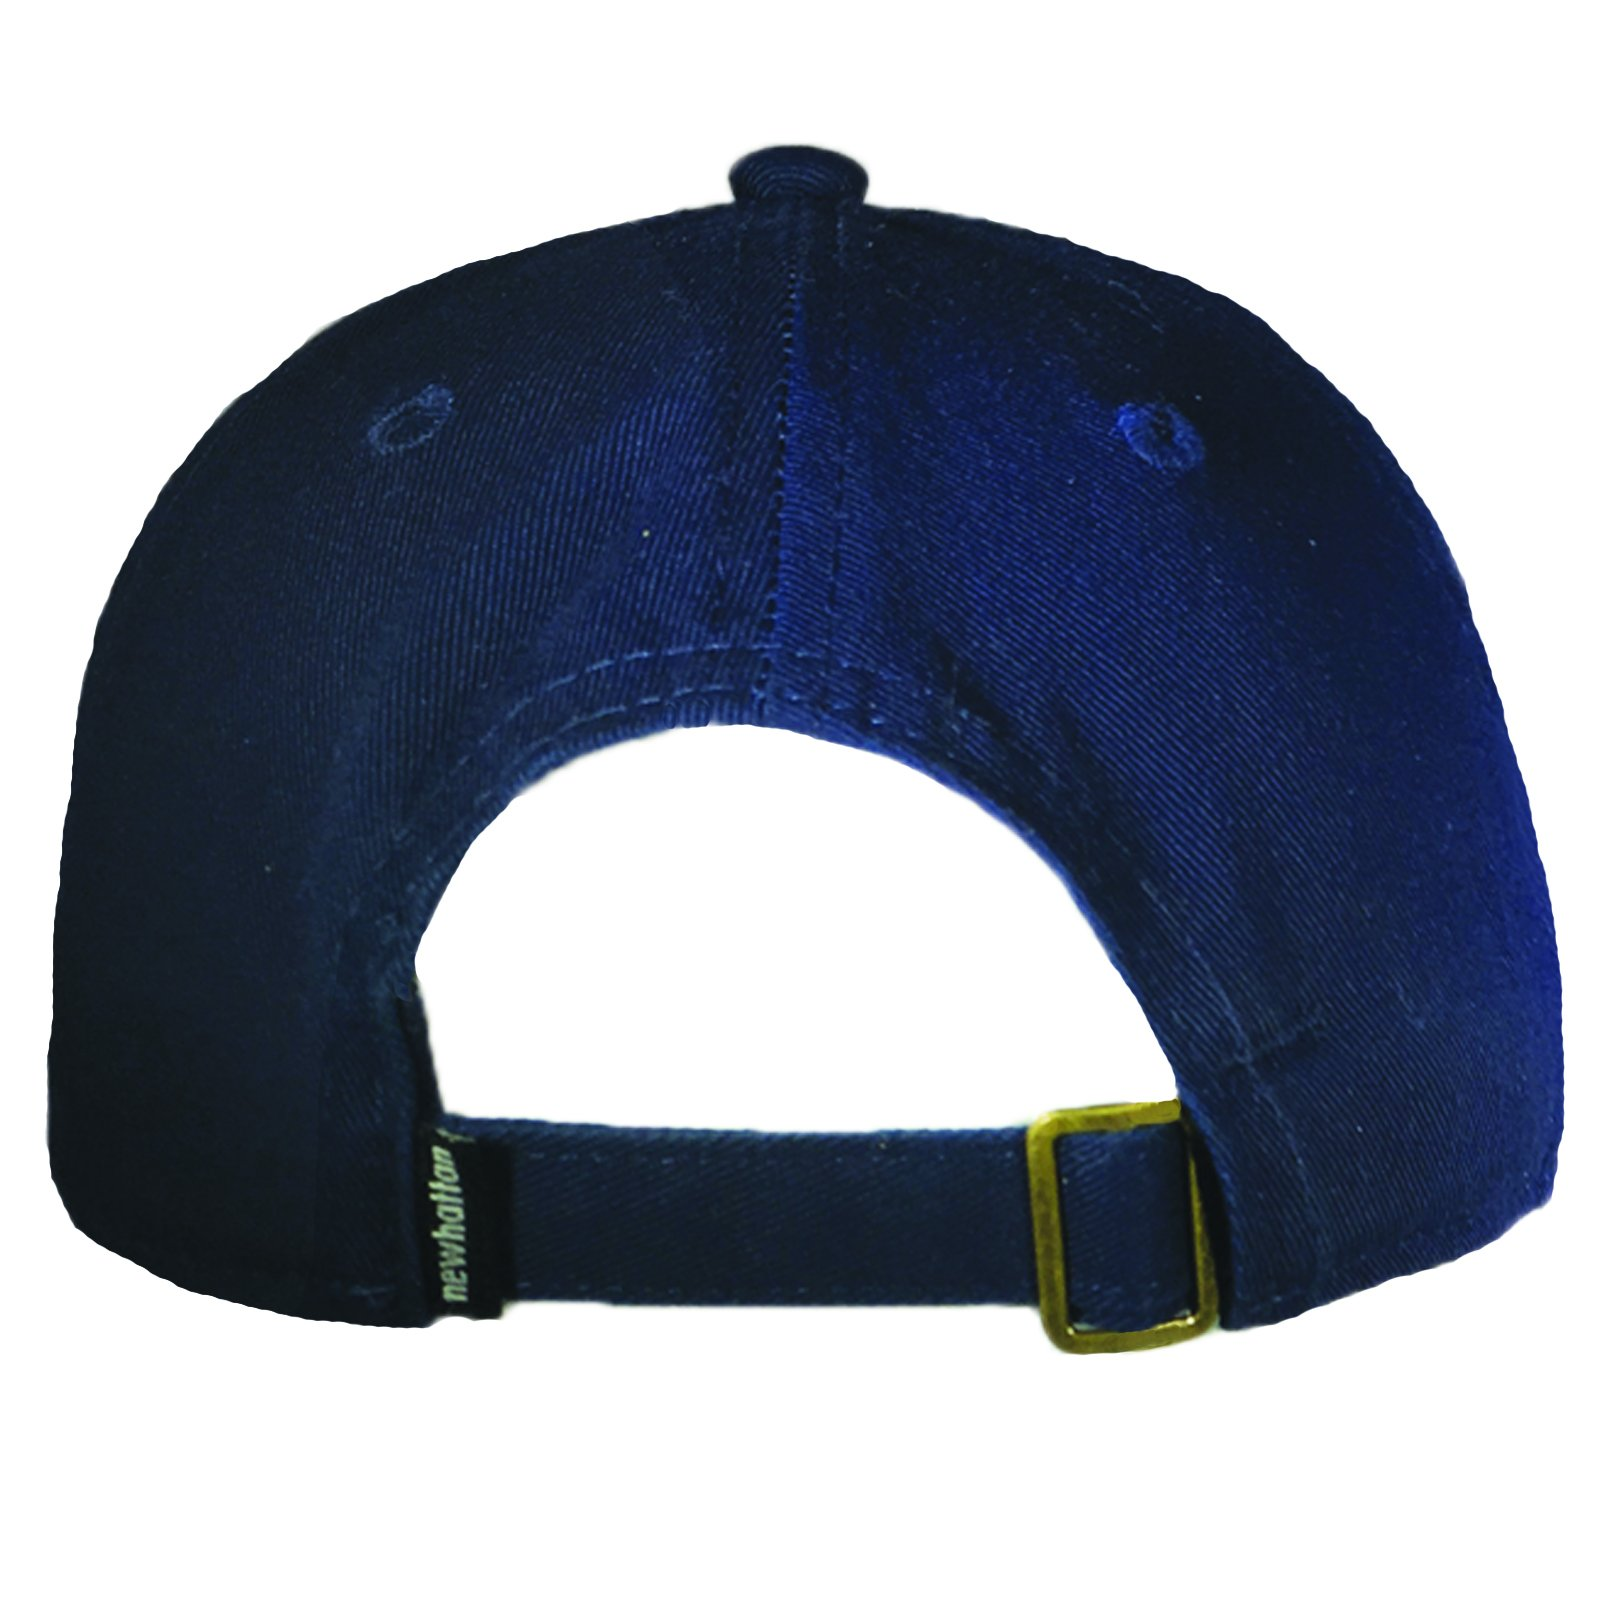 Tiny Expressions Toddler Boys' and Girls' Navy Embroidered Initial Baseball Hat Monogrammed Cap (Z, 2-6yrs) by Tiny Expressions (Image #2)